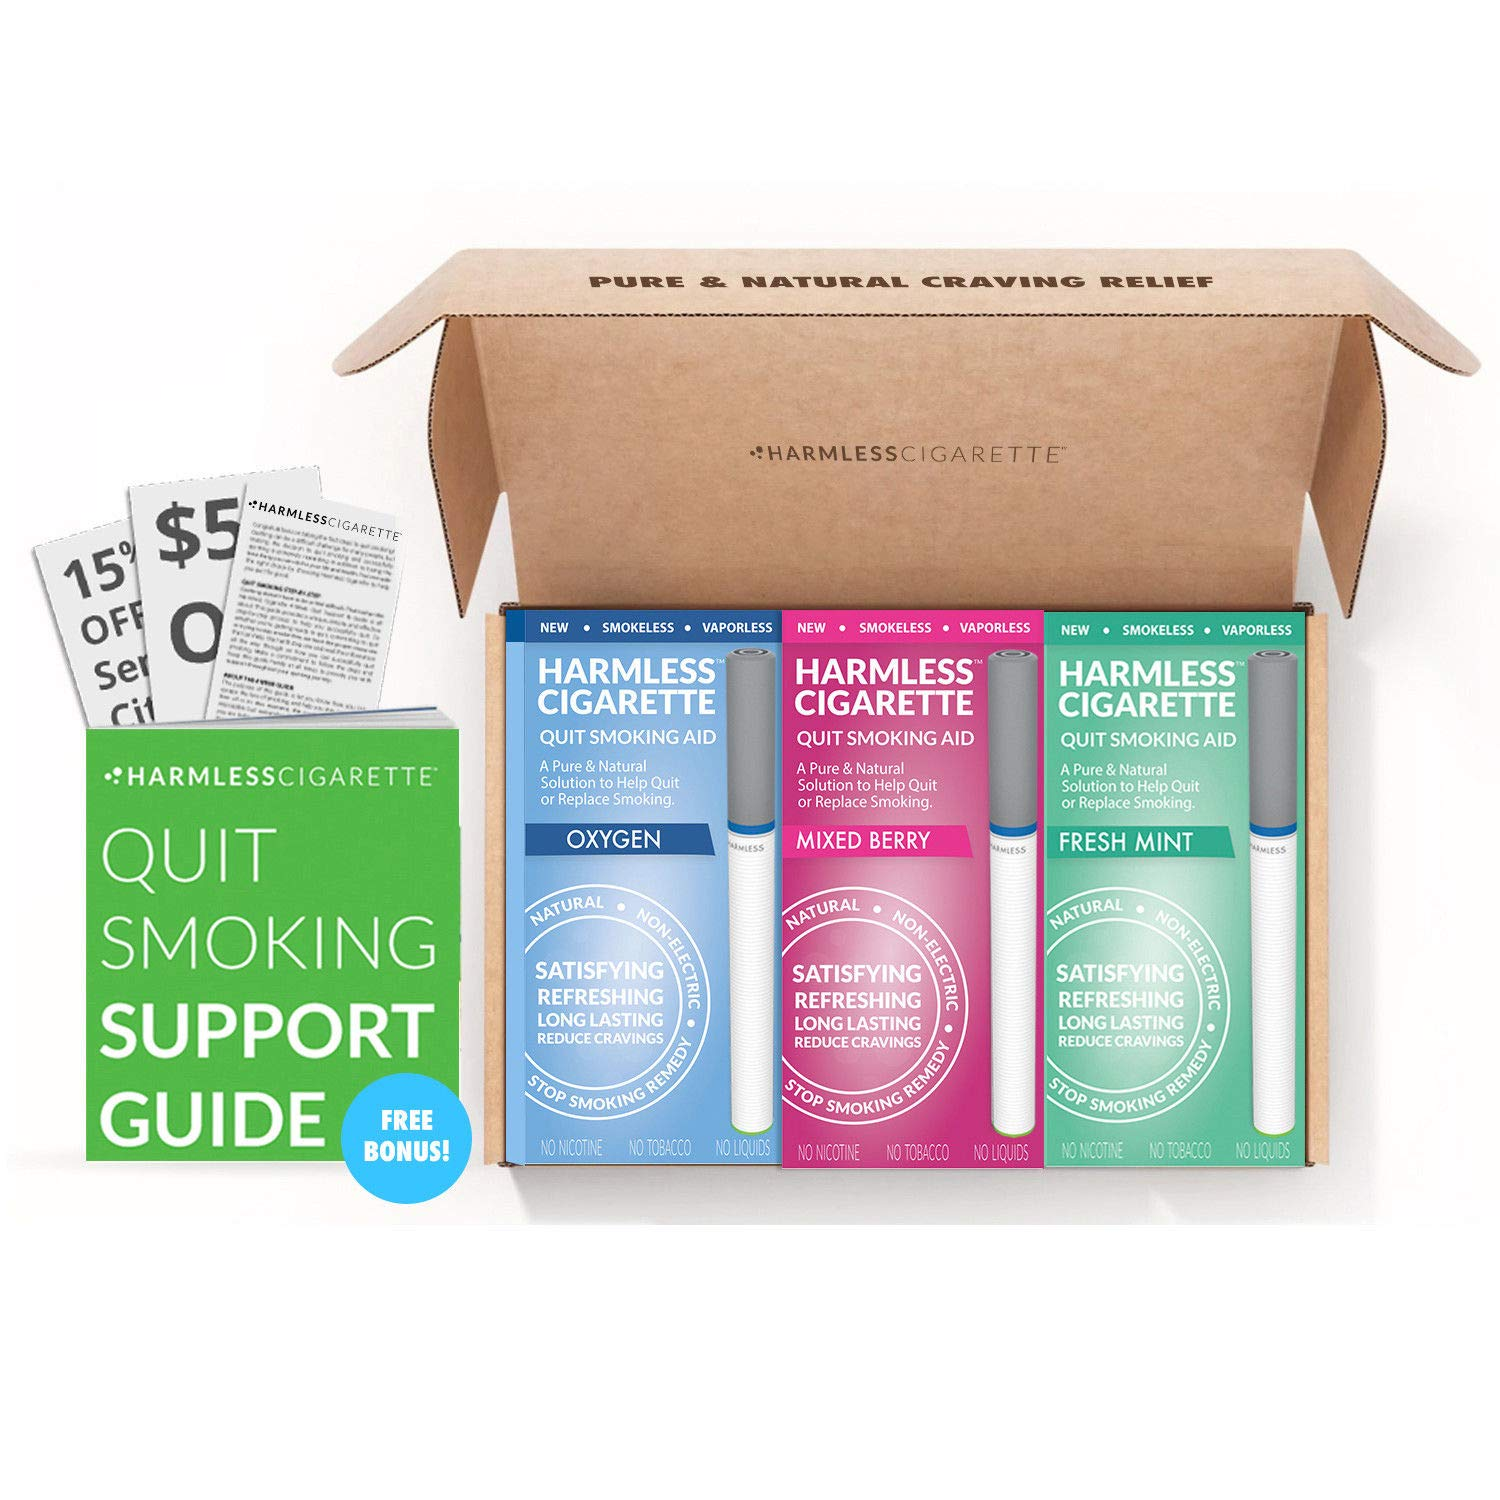 Safe Nicotine-Free Solution to Quit Smoking, Reduce Cravings and Satisfy Hand-to-Mouth, Withdrawal Symptoms and Help Stop Smoking (Oxygen/Mixed Berry/Fresh Mint, Best Value, Variation Set)